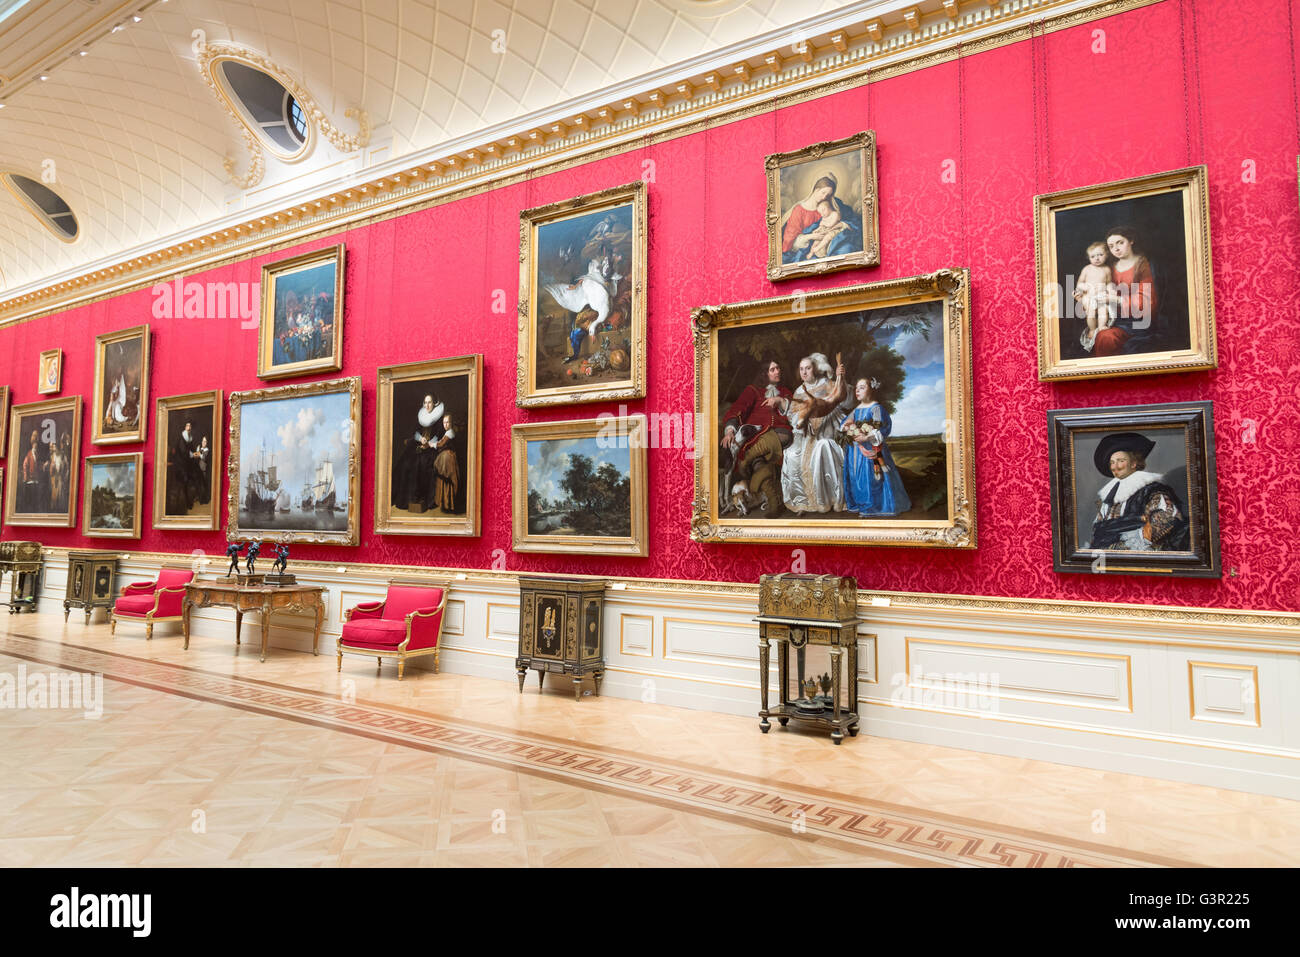 Oil paintings in the Great Gallery in the Wallace Collection art gallery, London, England, UK - Stock Image